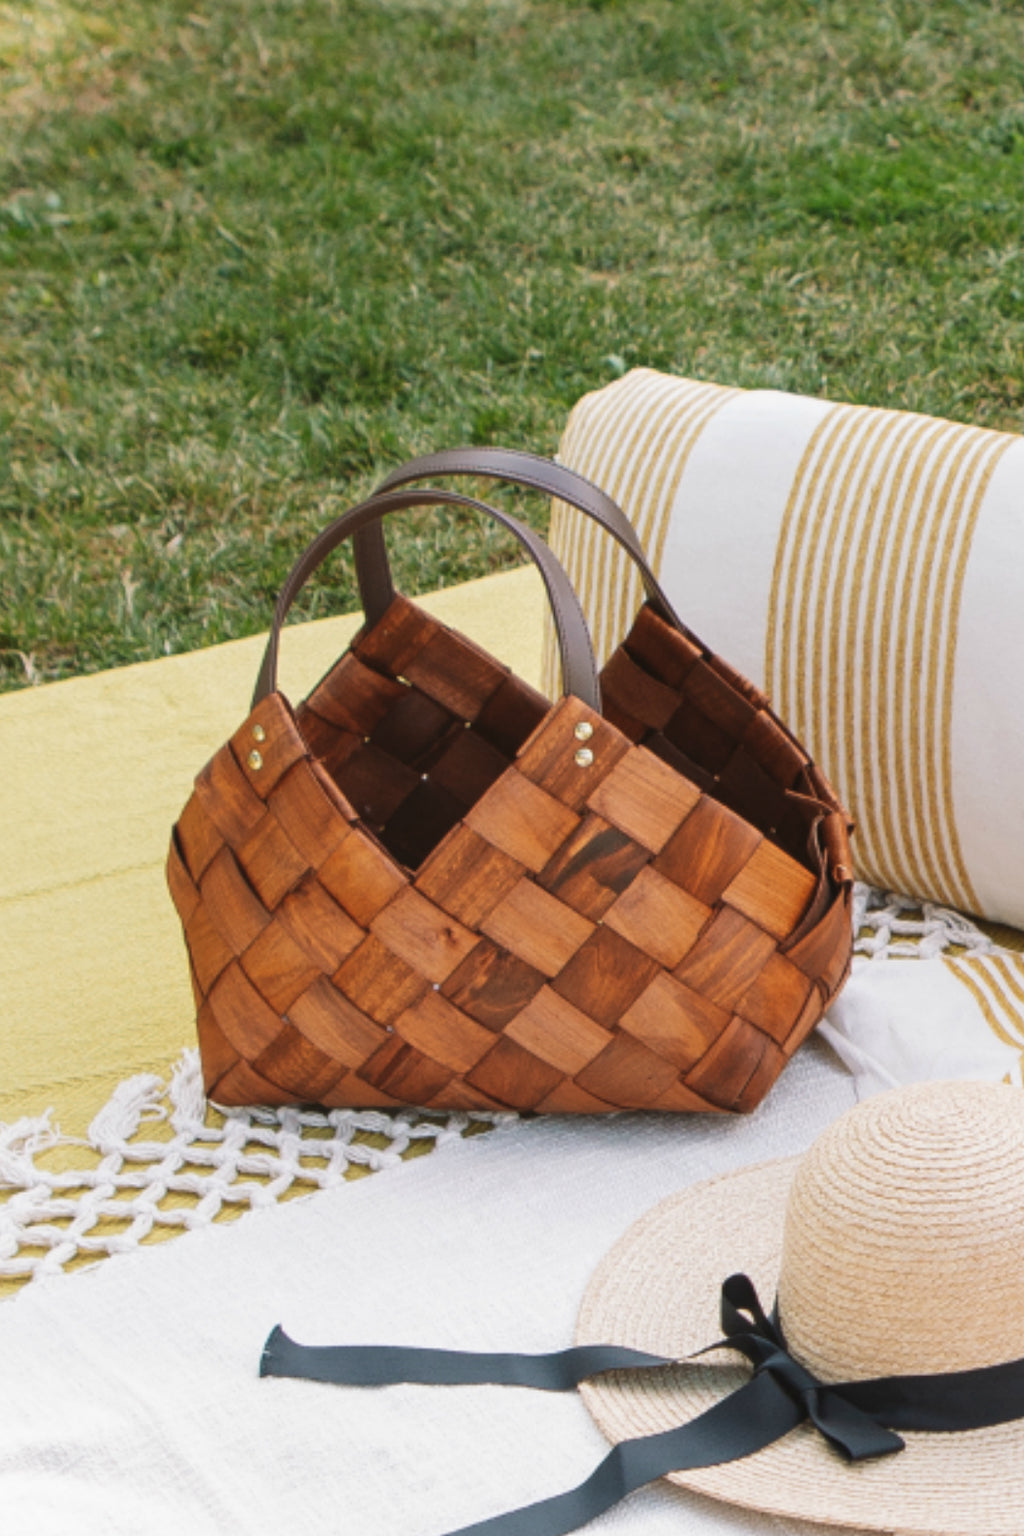 Creative Co-op Sonoma Baskets with Vegan Leather Handles